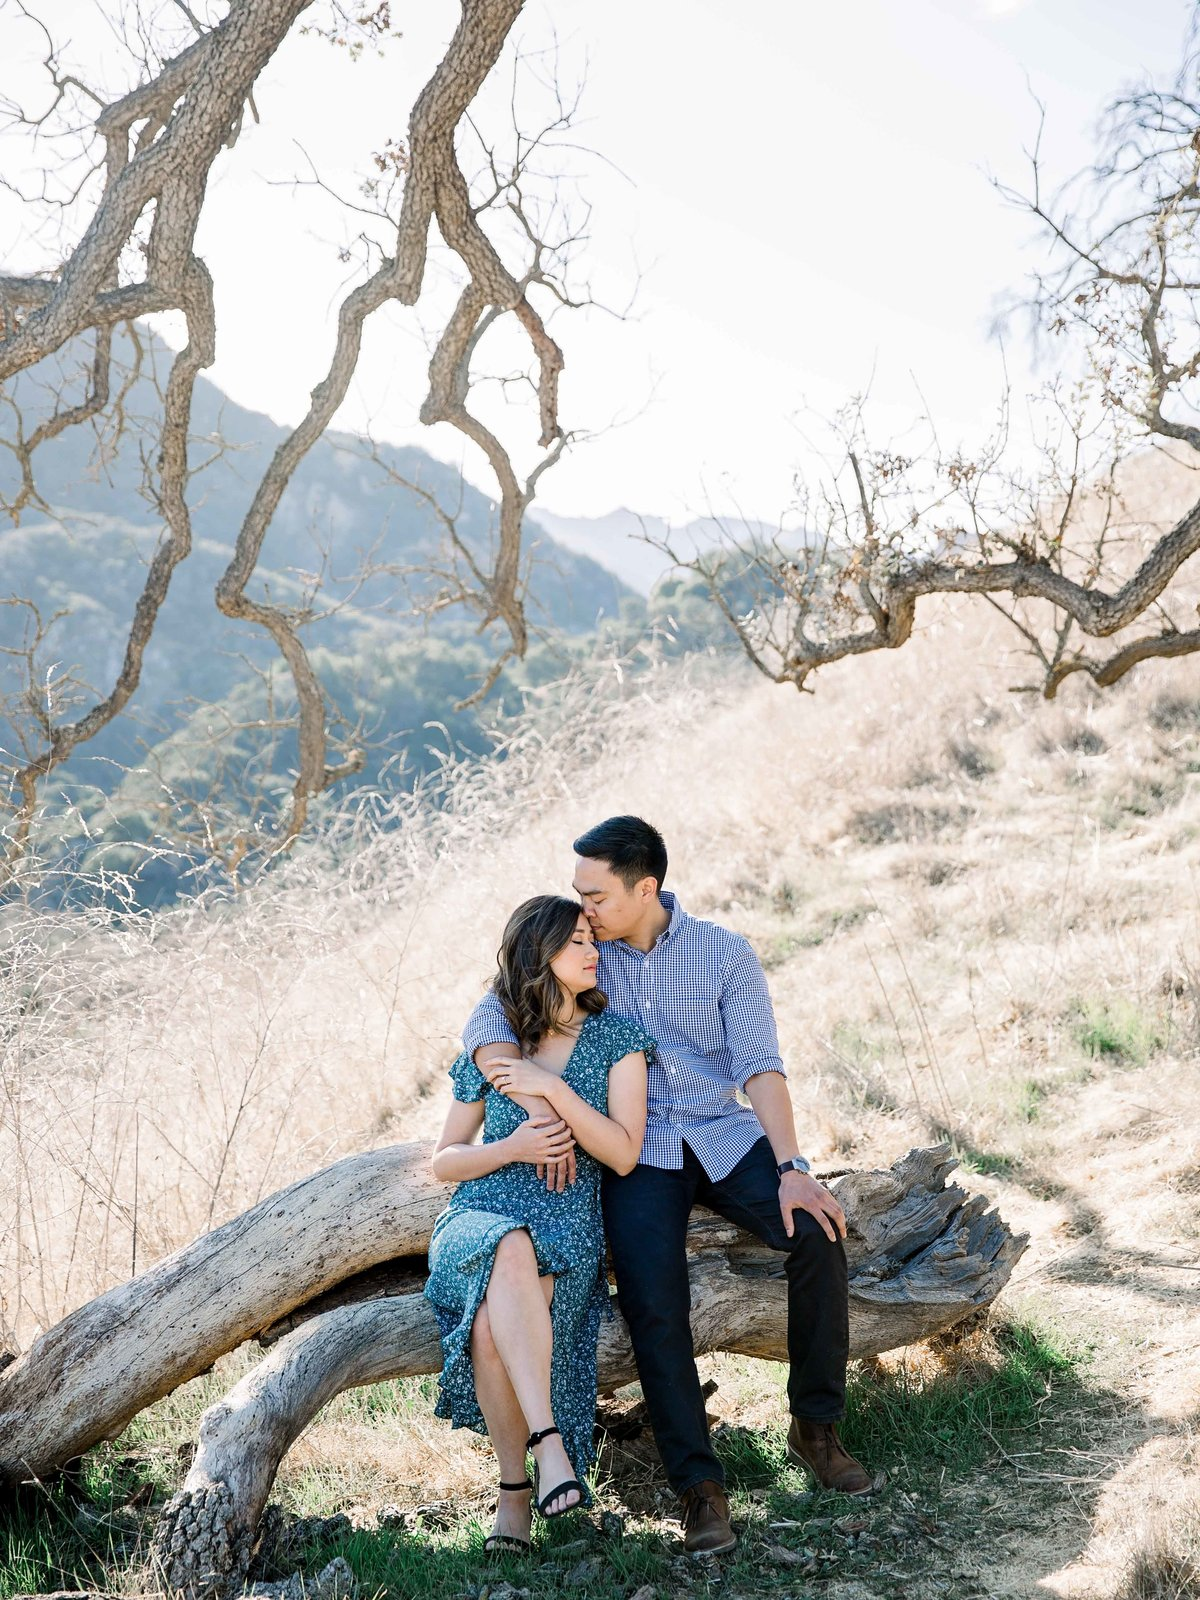 Babsie-Ly-Photography-malibu-creek-state-park-Engagement-Session-Film-Asian-Photographer-003